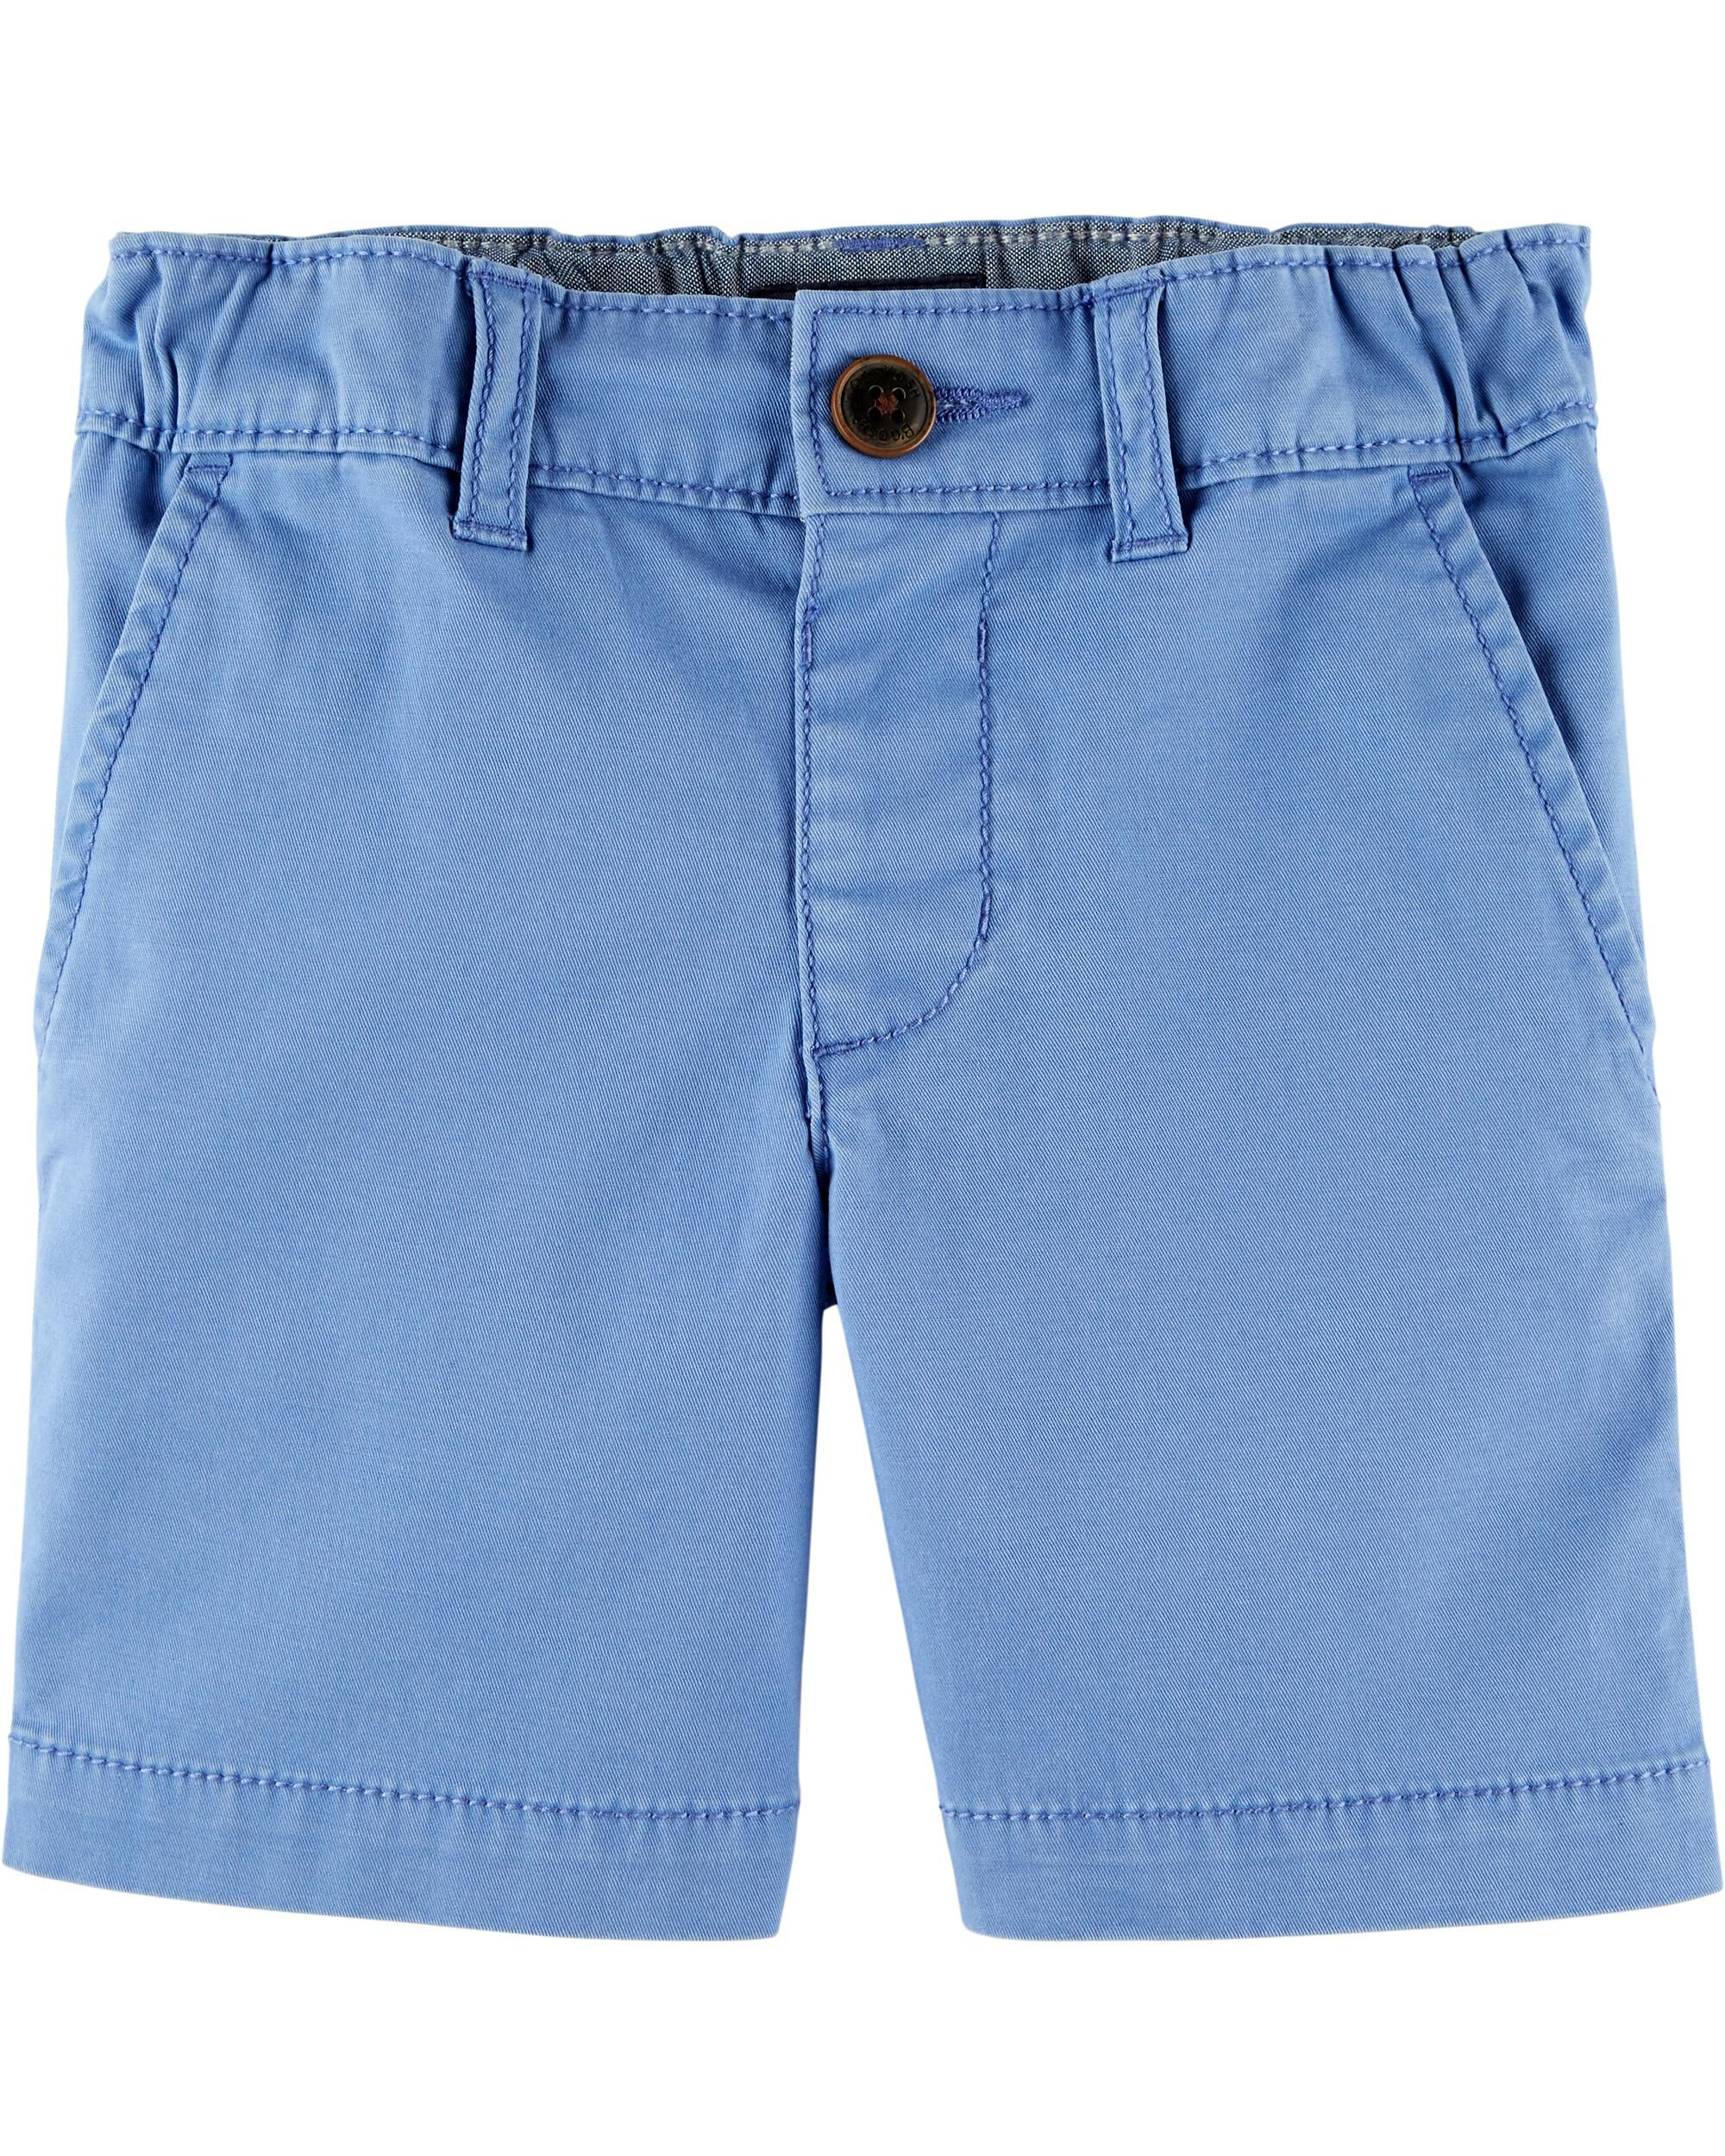 OshKosh BGosh Boys Little Stretch Flat Front Short